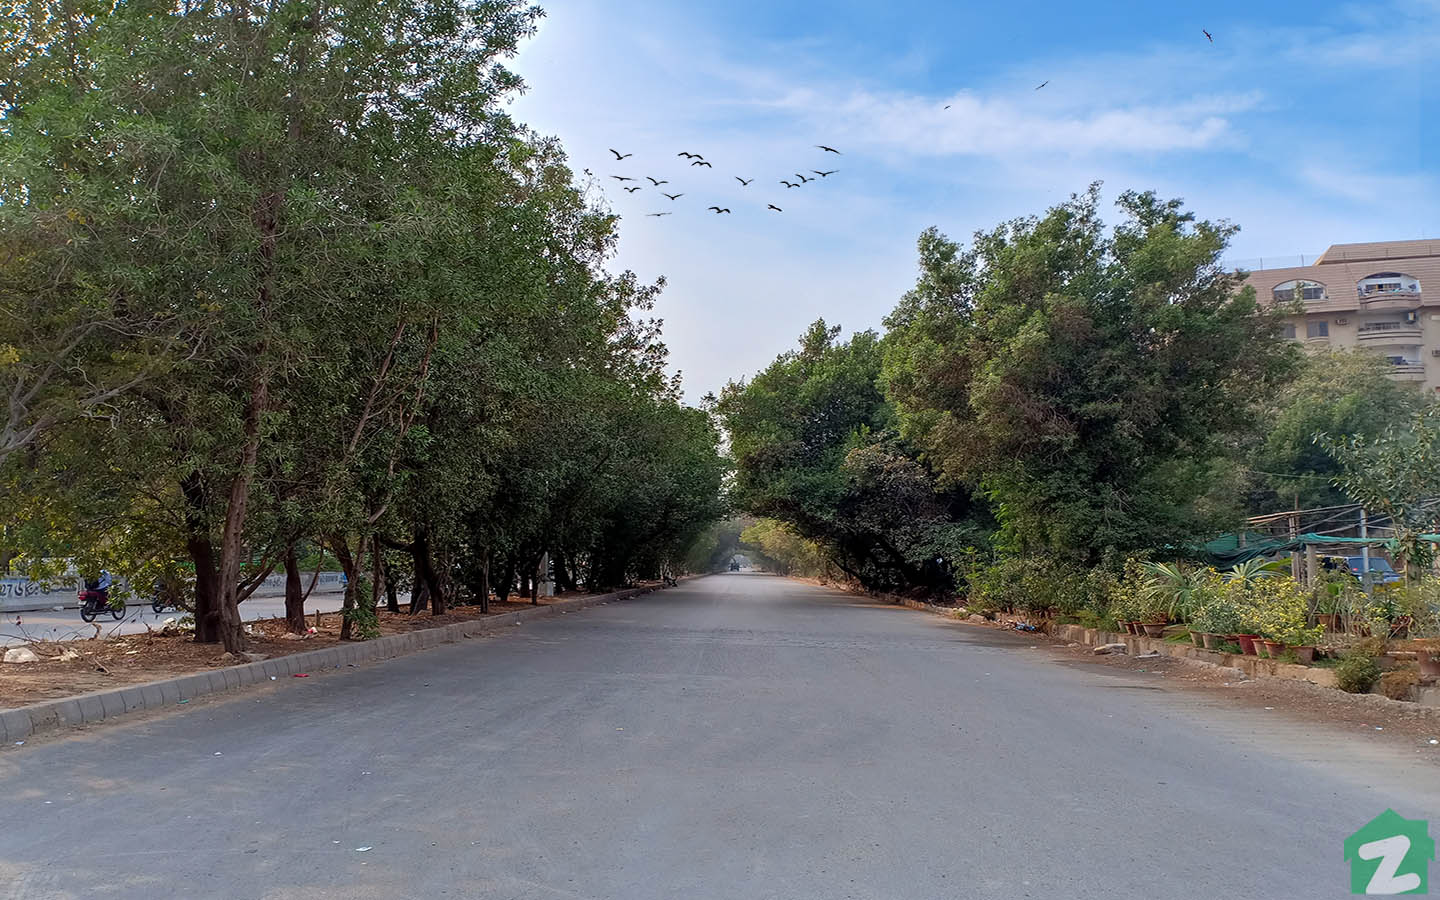 A view of evening at Shaheed-e-Millat Road